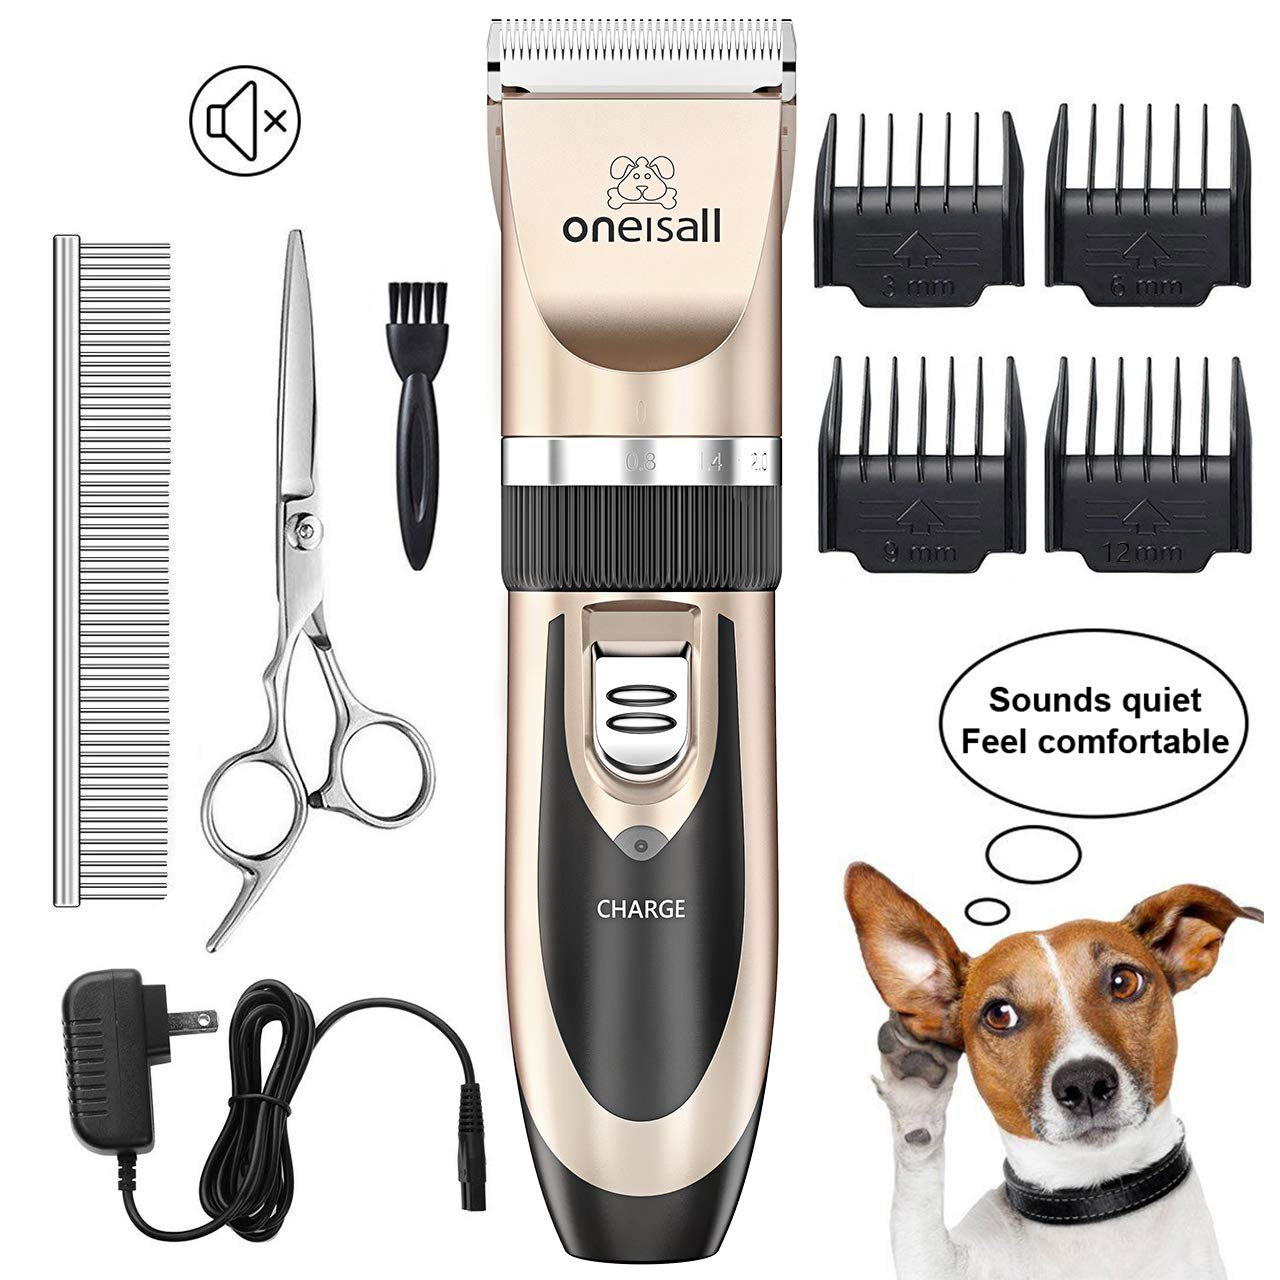 ONEISALL Dog Shaver Clippers Low Noise Rechargeable Cordless Electric Quiet Hair Clippers Set for Dog Cat by ONEISALL